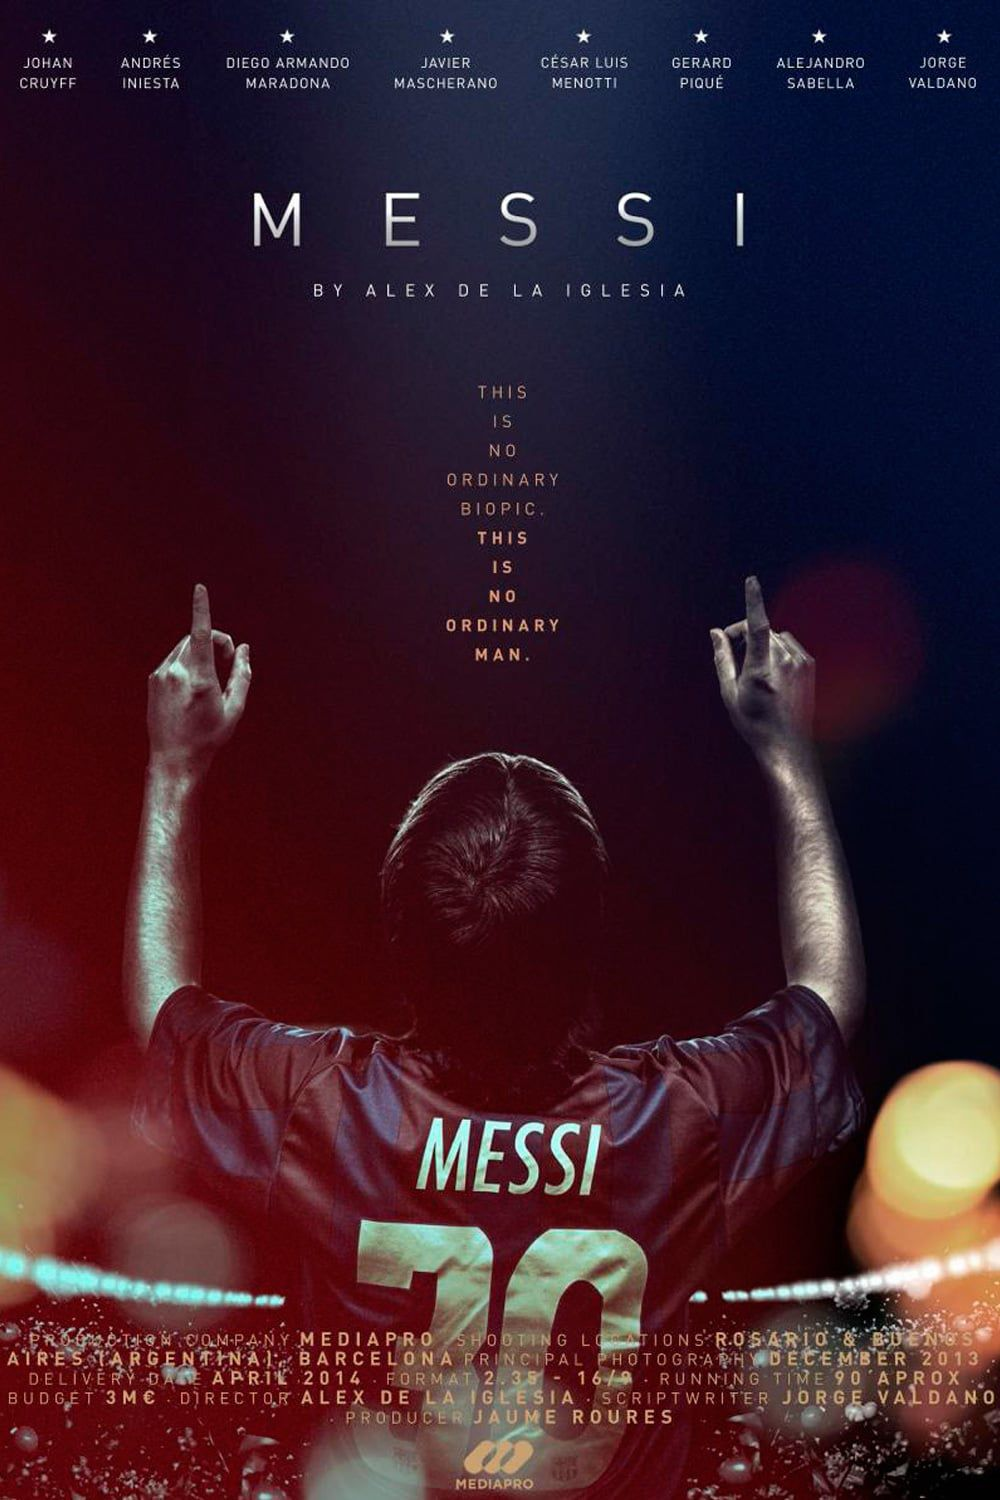 Messi - The movie - Documentaire (2014)